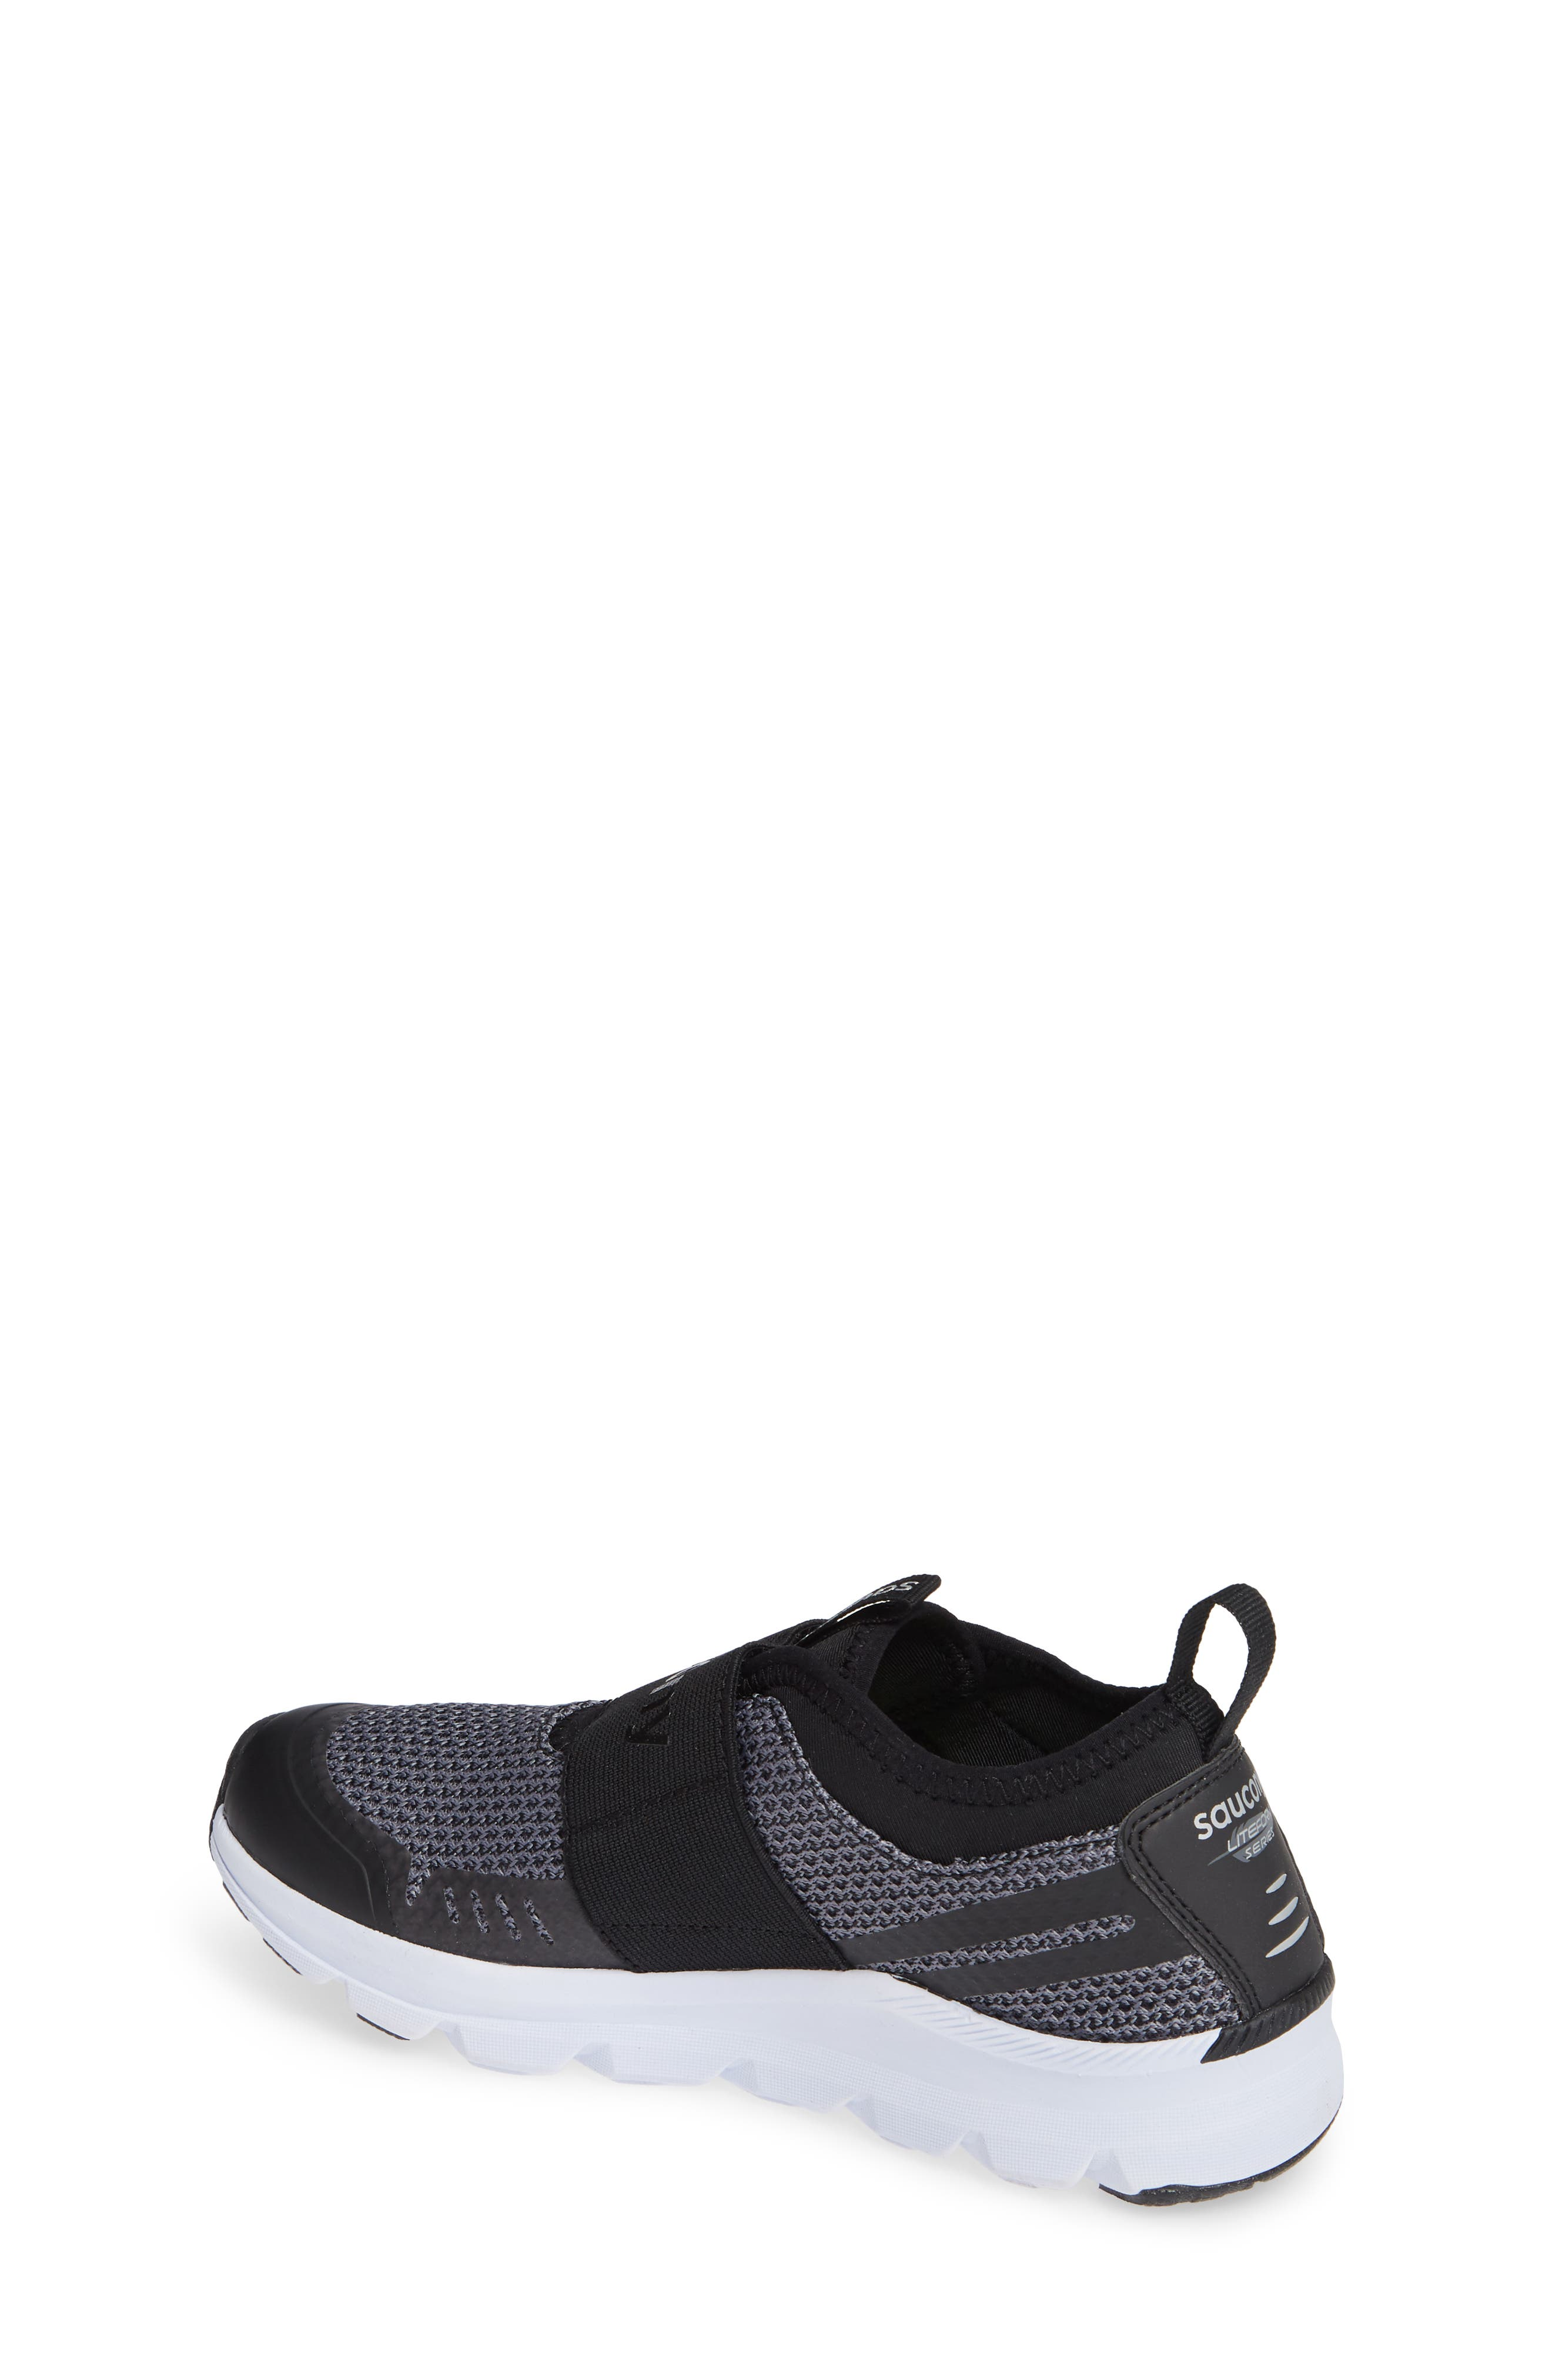 Liteform Stretch and Go A/C Sneaker,                             Alternate thumbnail 2, color,                             BLACK TEXTILE